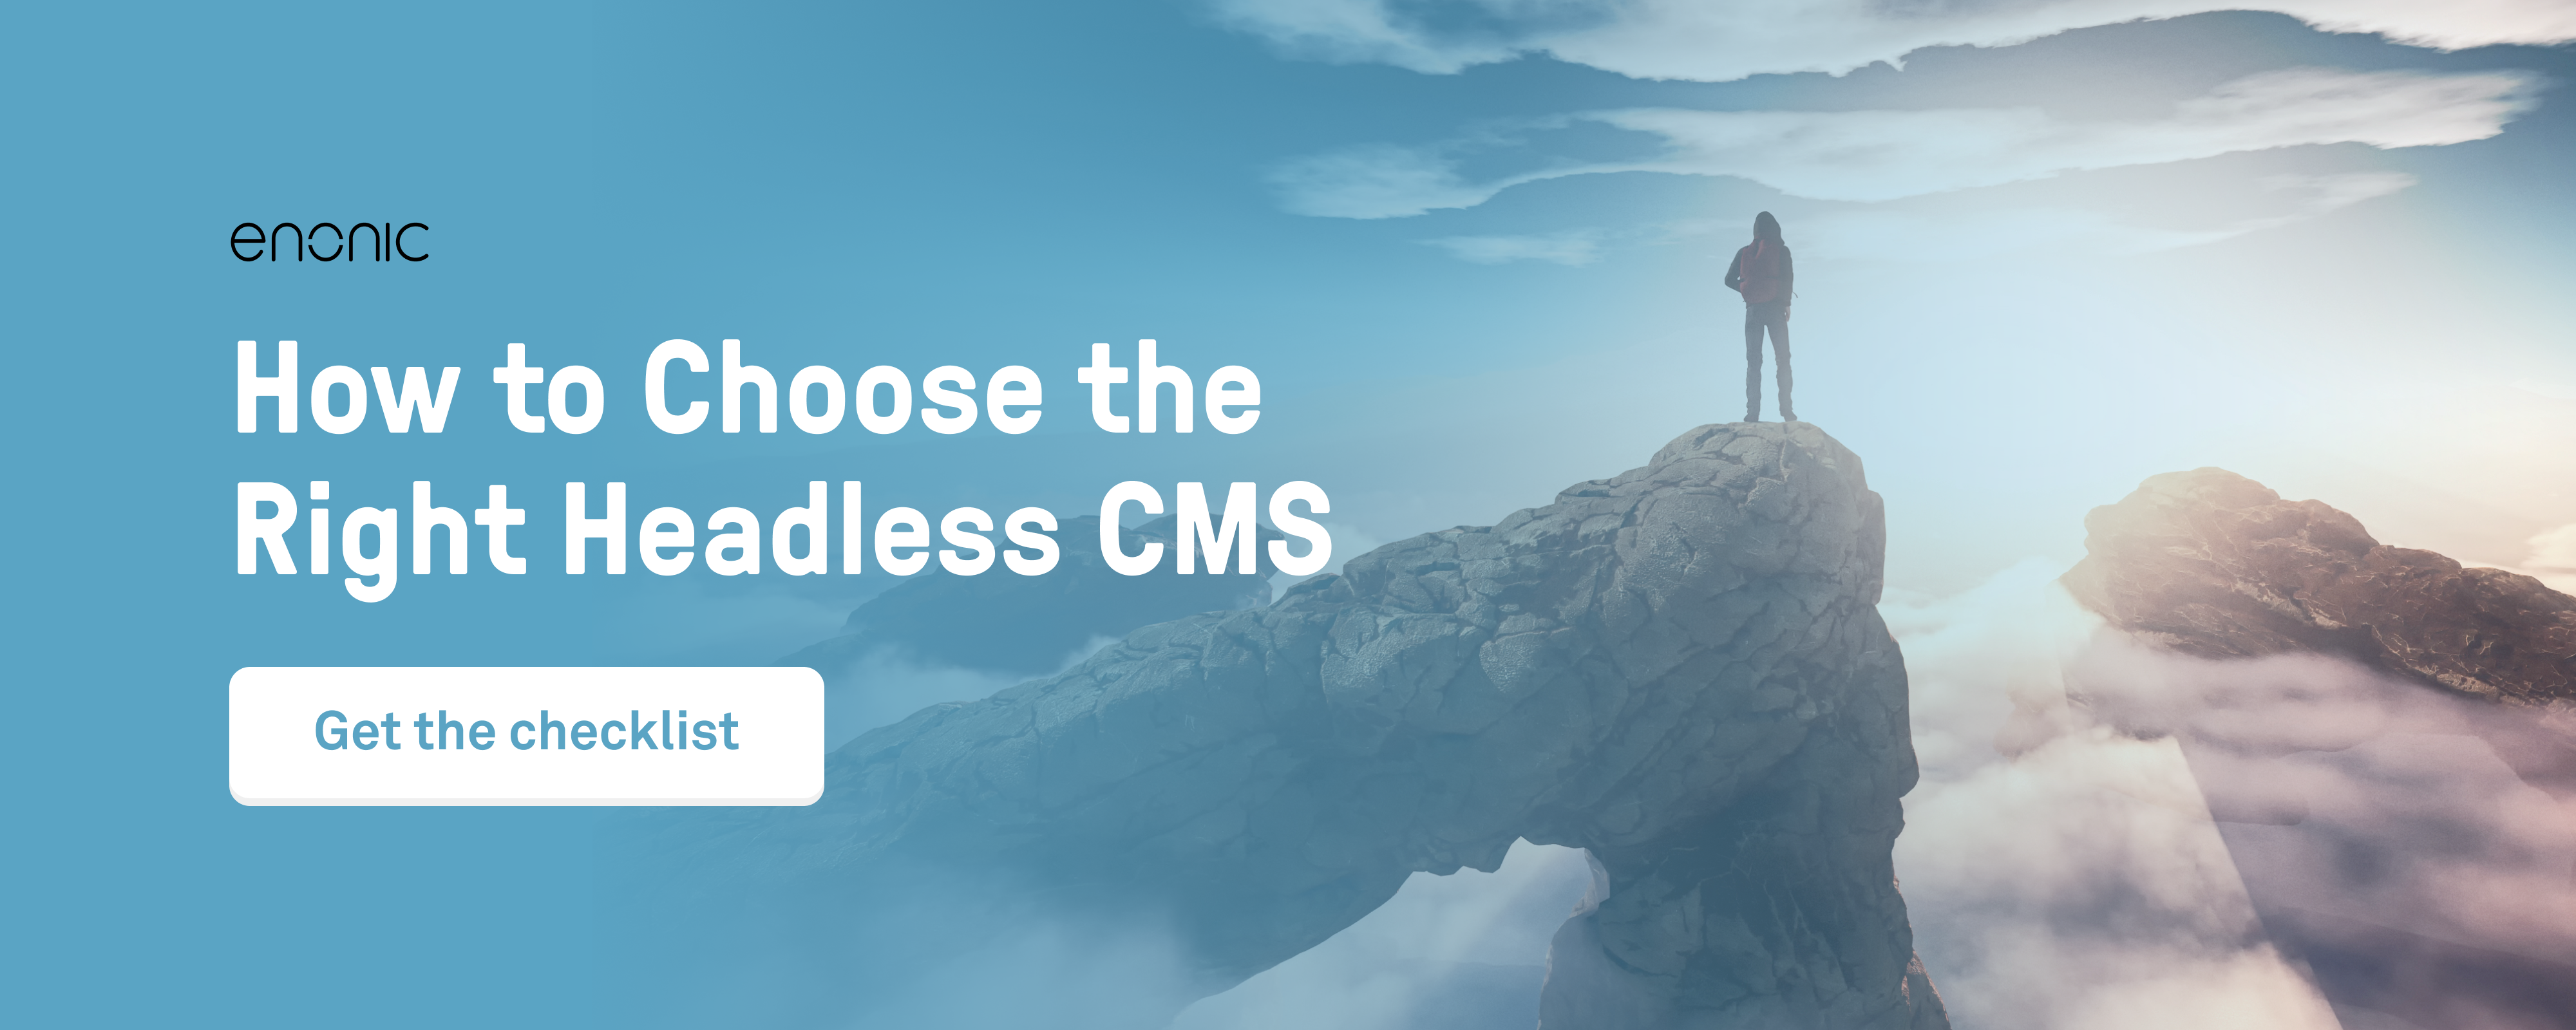 Checklist: How to choose the right headless CMS